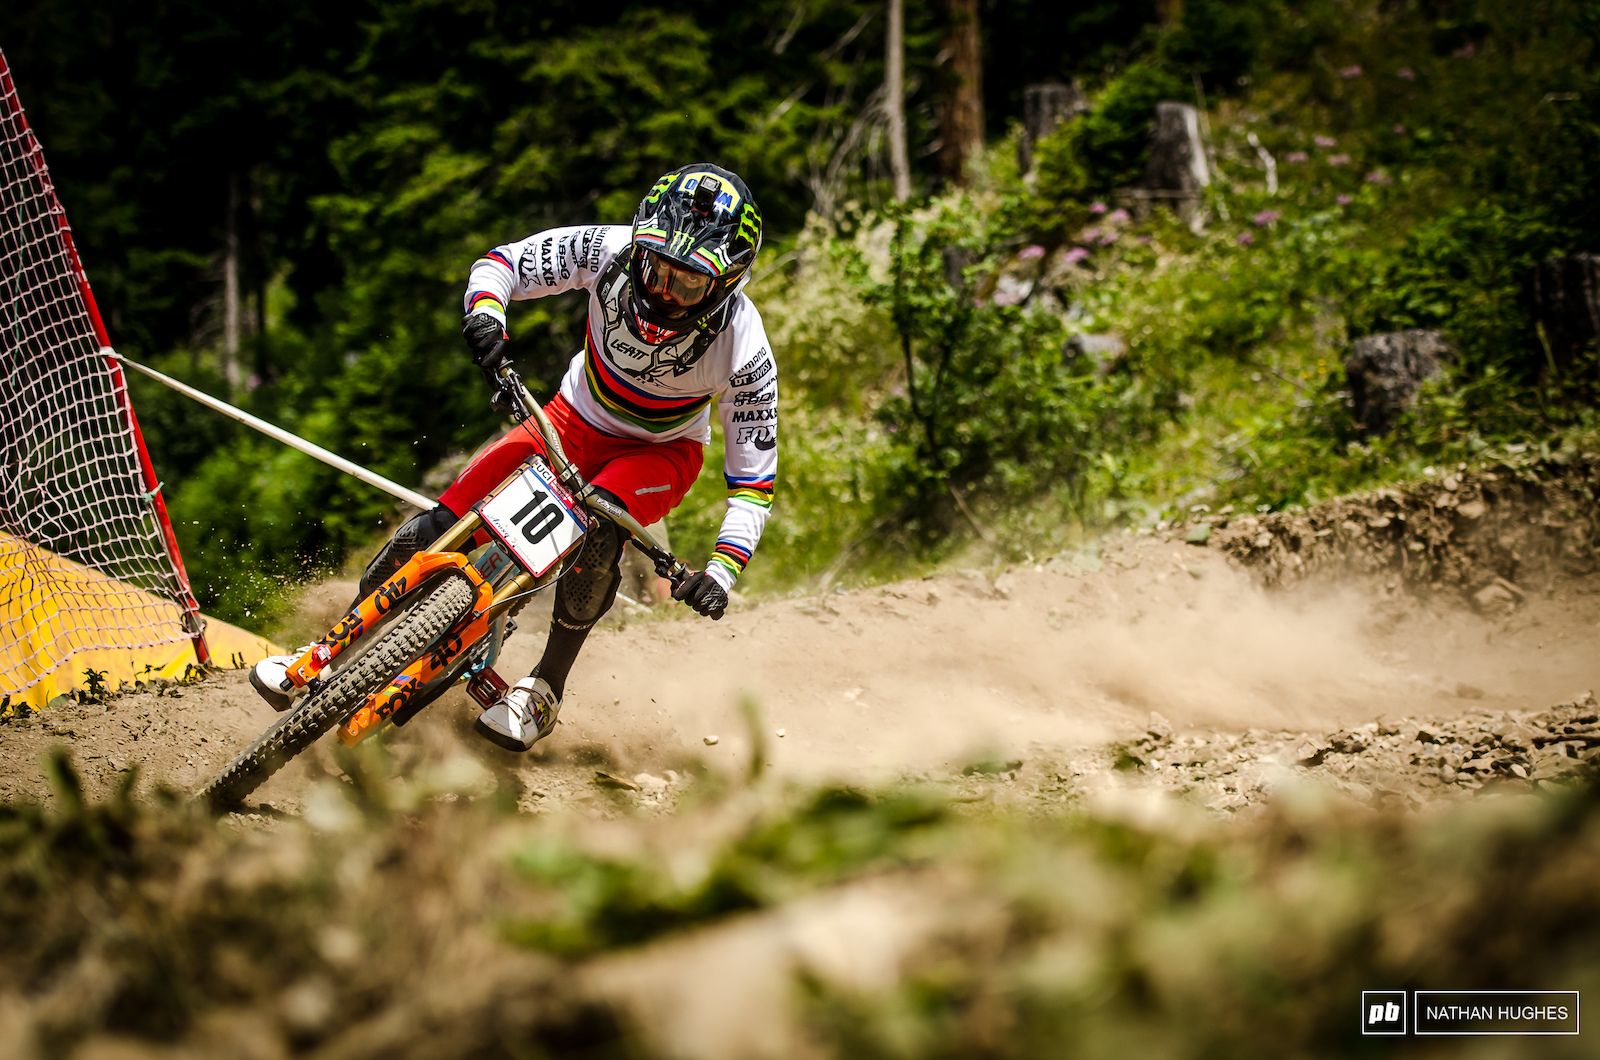 Hart smashing the dusty lower turns during qualifying at Lenzerheide.